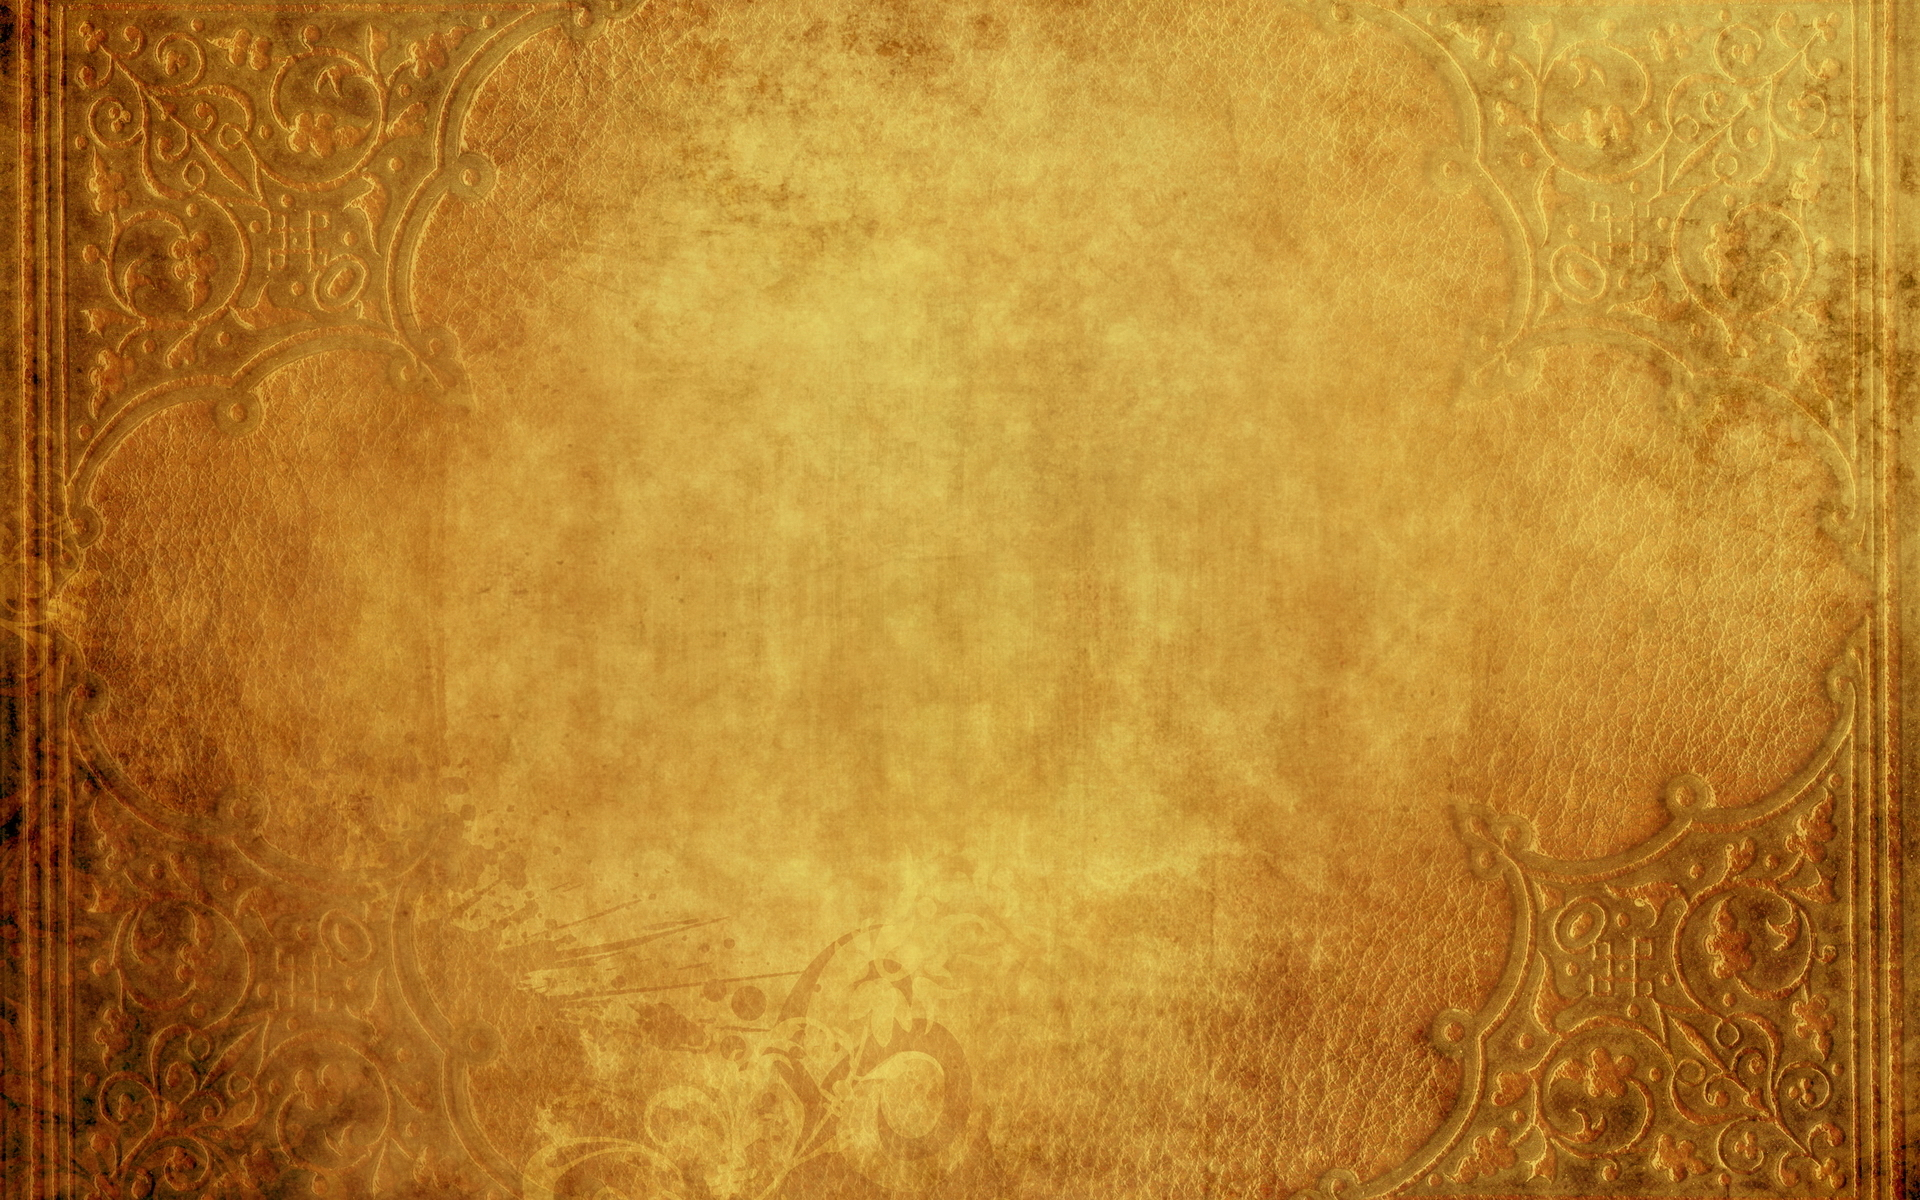 Gold Background Images 8 1920x1200